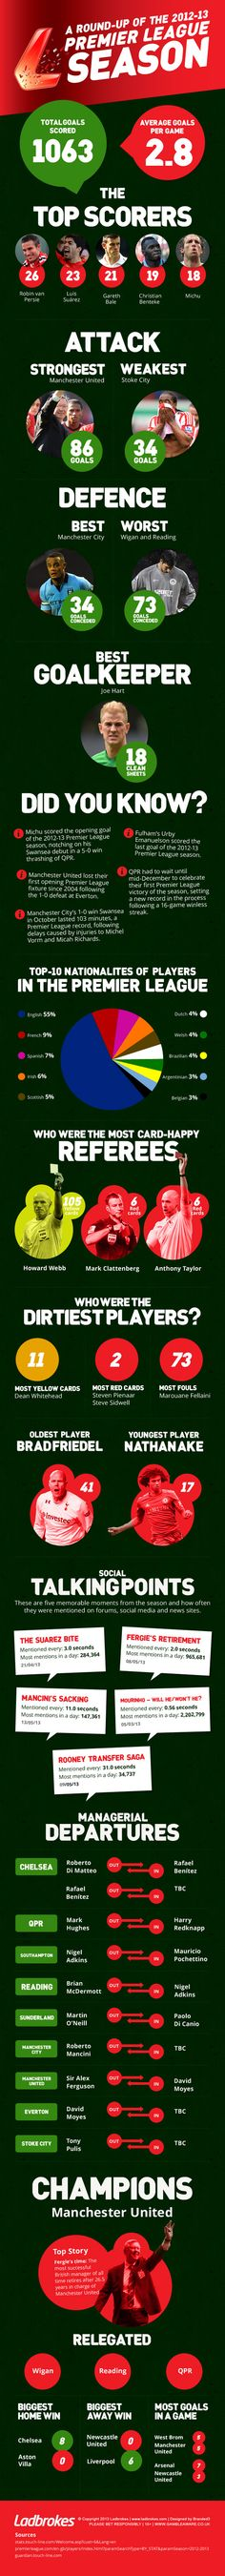 A round-up of the 2012-13 Premier League season [Infographic]